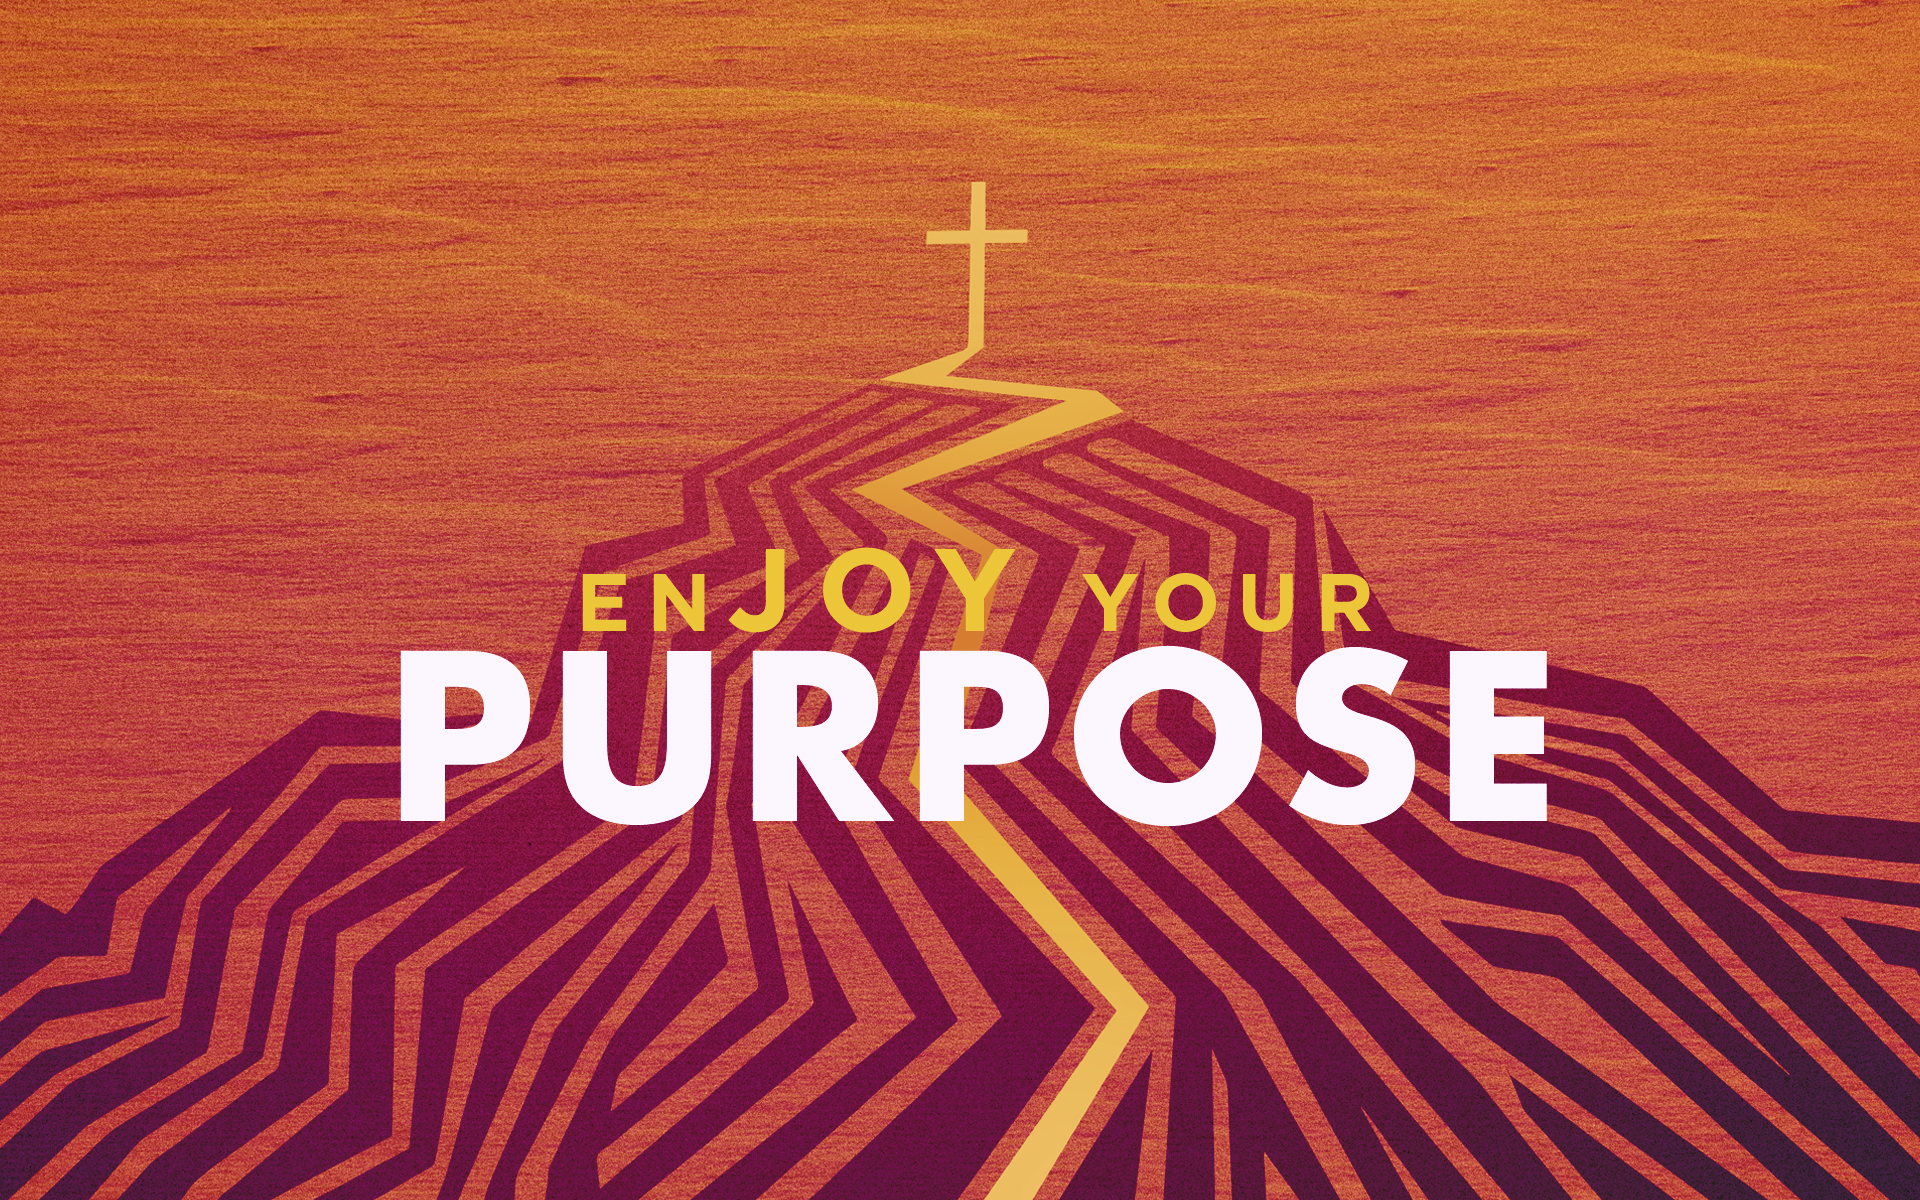 enJOY Your Purpose